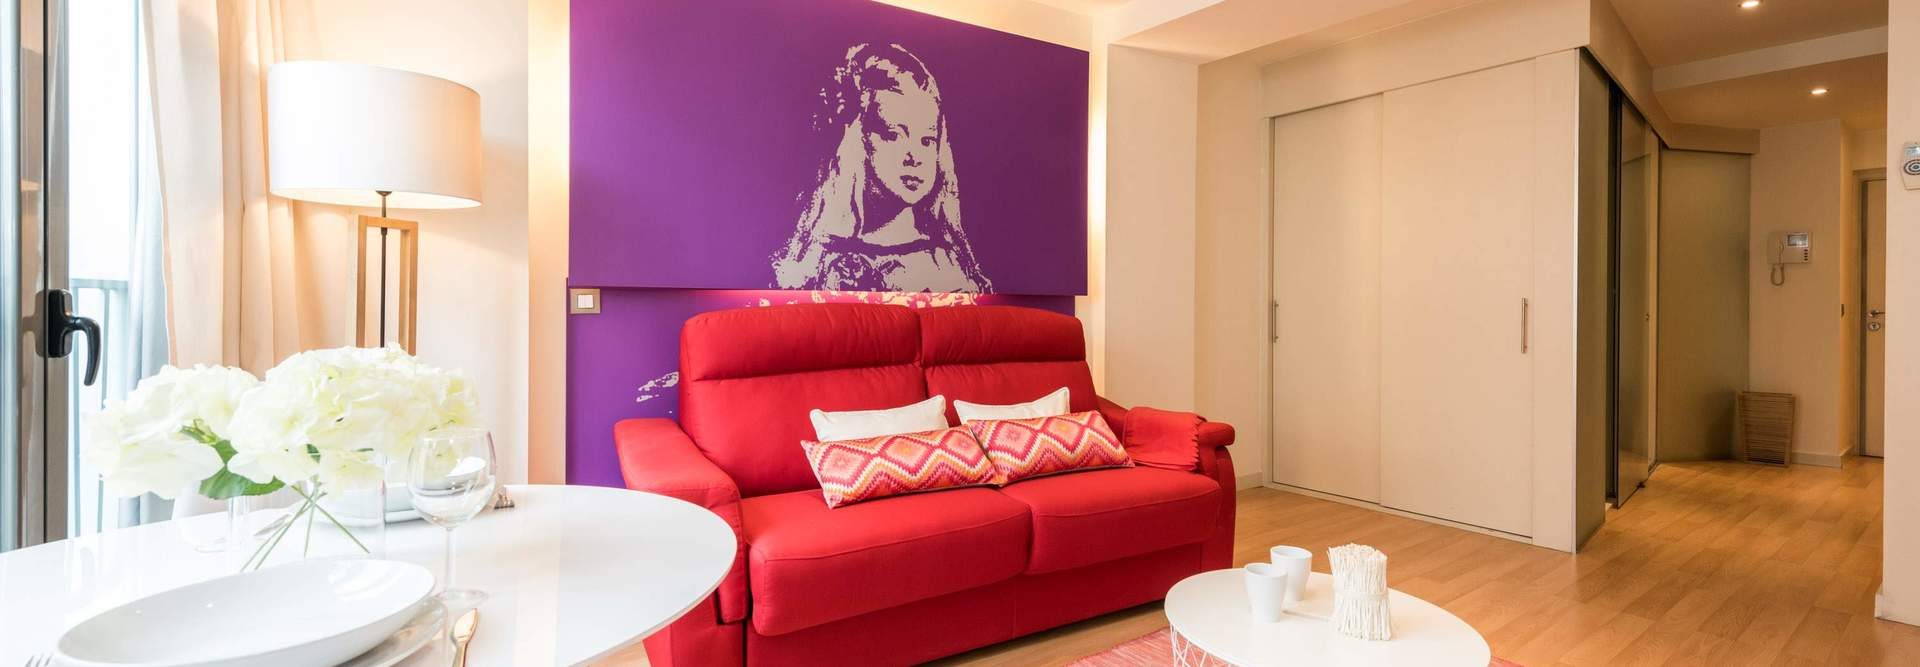 Home alquiler apartamento madrid centro mad4rent  12